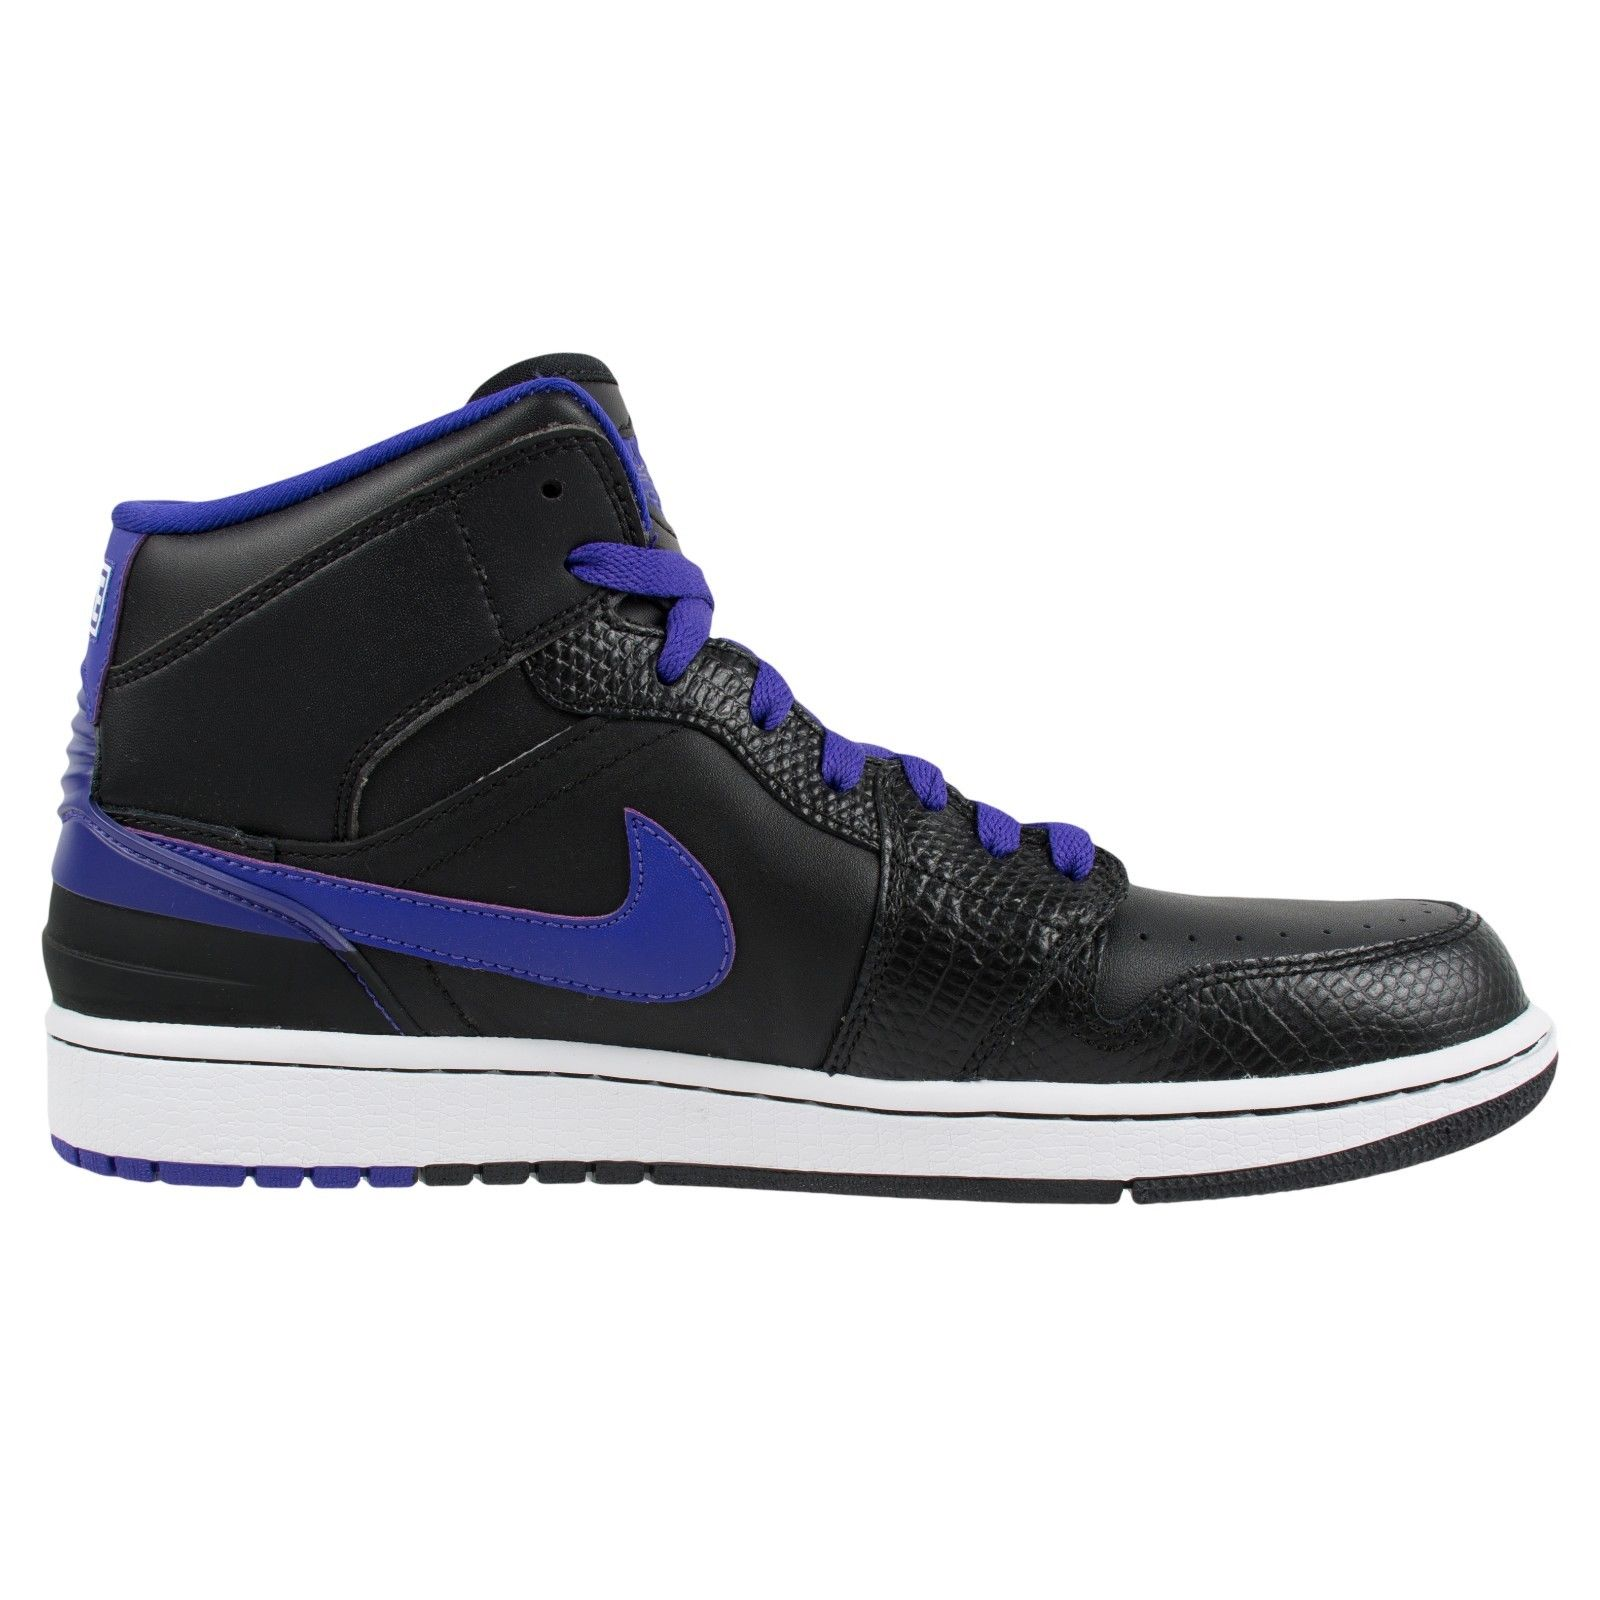 NIKE AIR JORDAN 1 RETRO 86 BLACK DARK CONCORD WHITE 644490 014